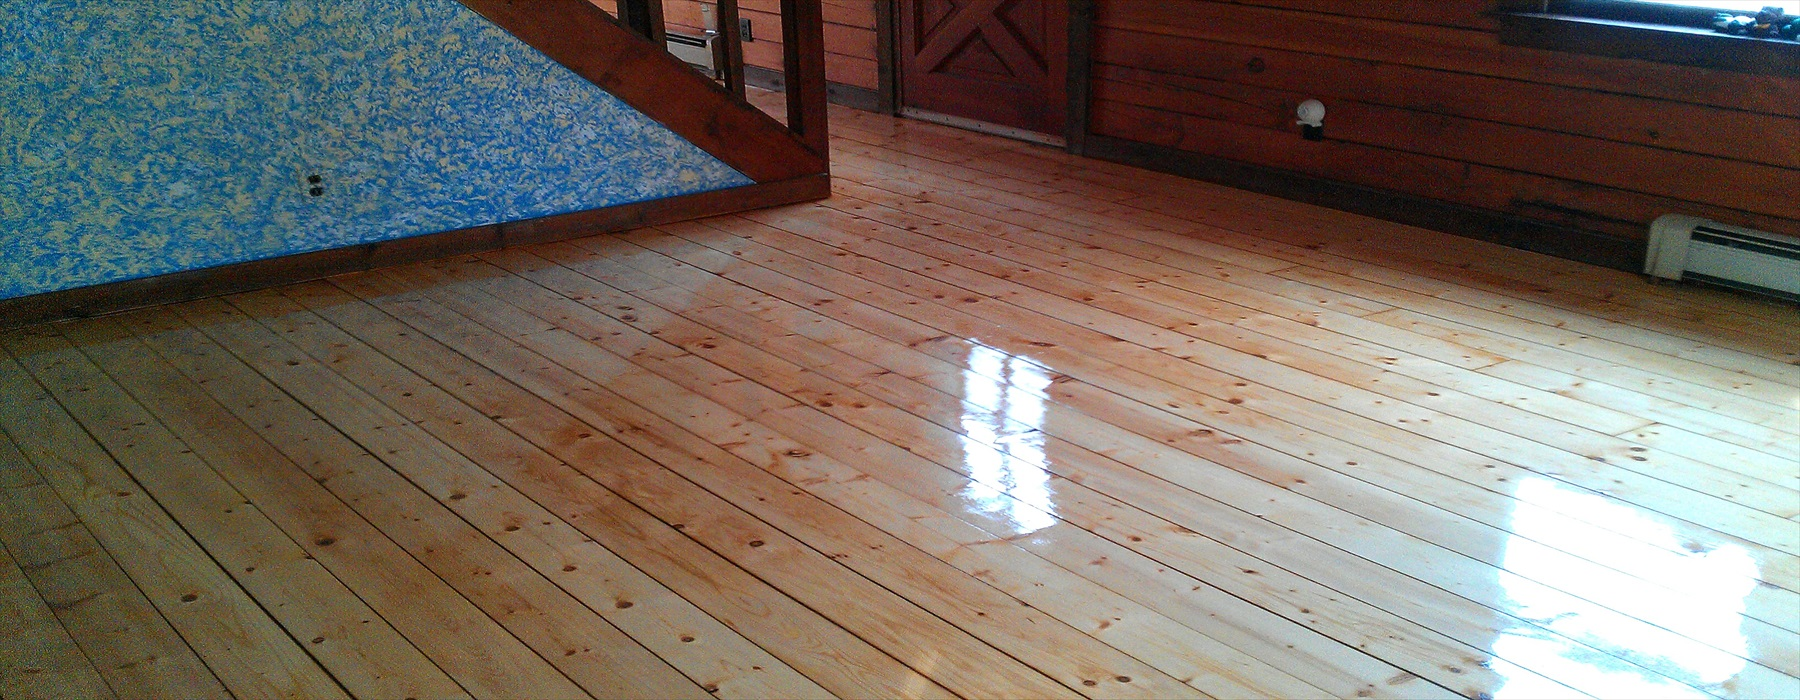 Hardwood Floor Sanding Refinishing Wood Floor Installations 30 Years